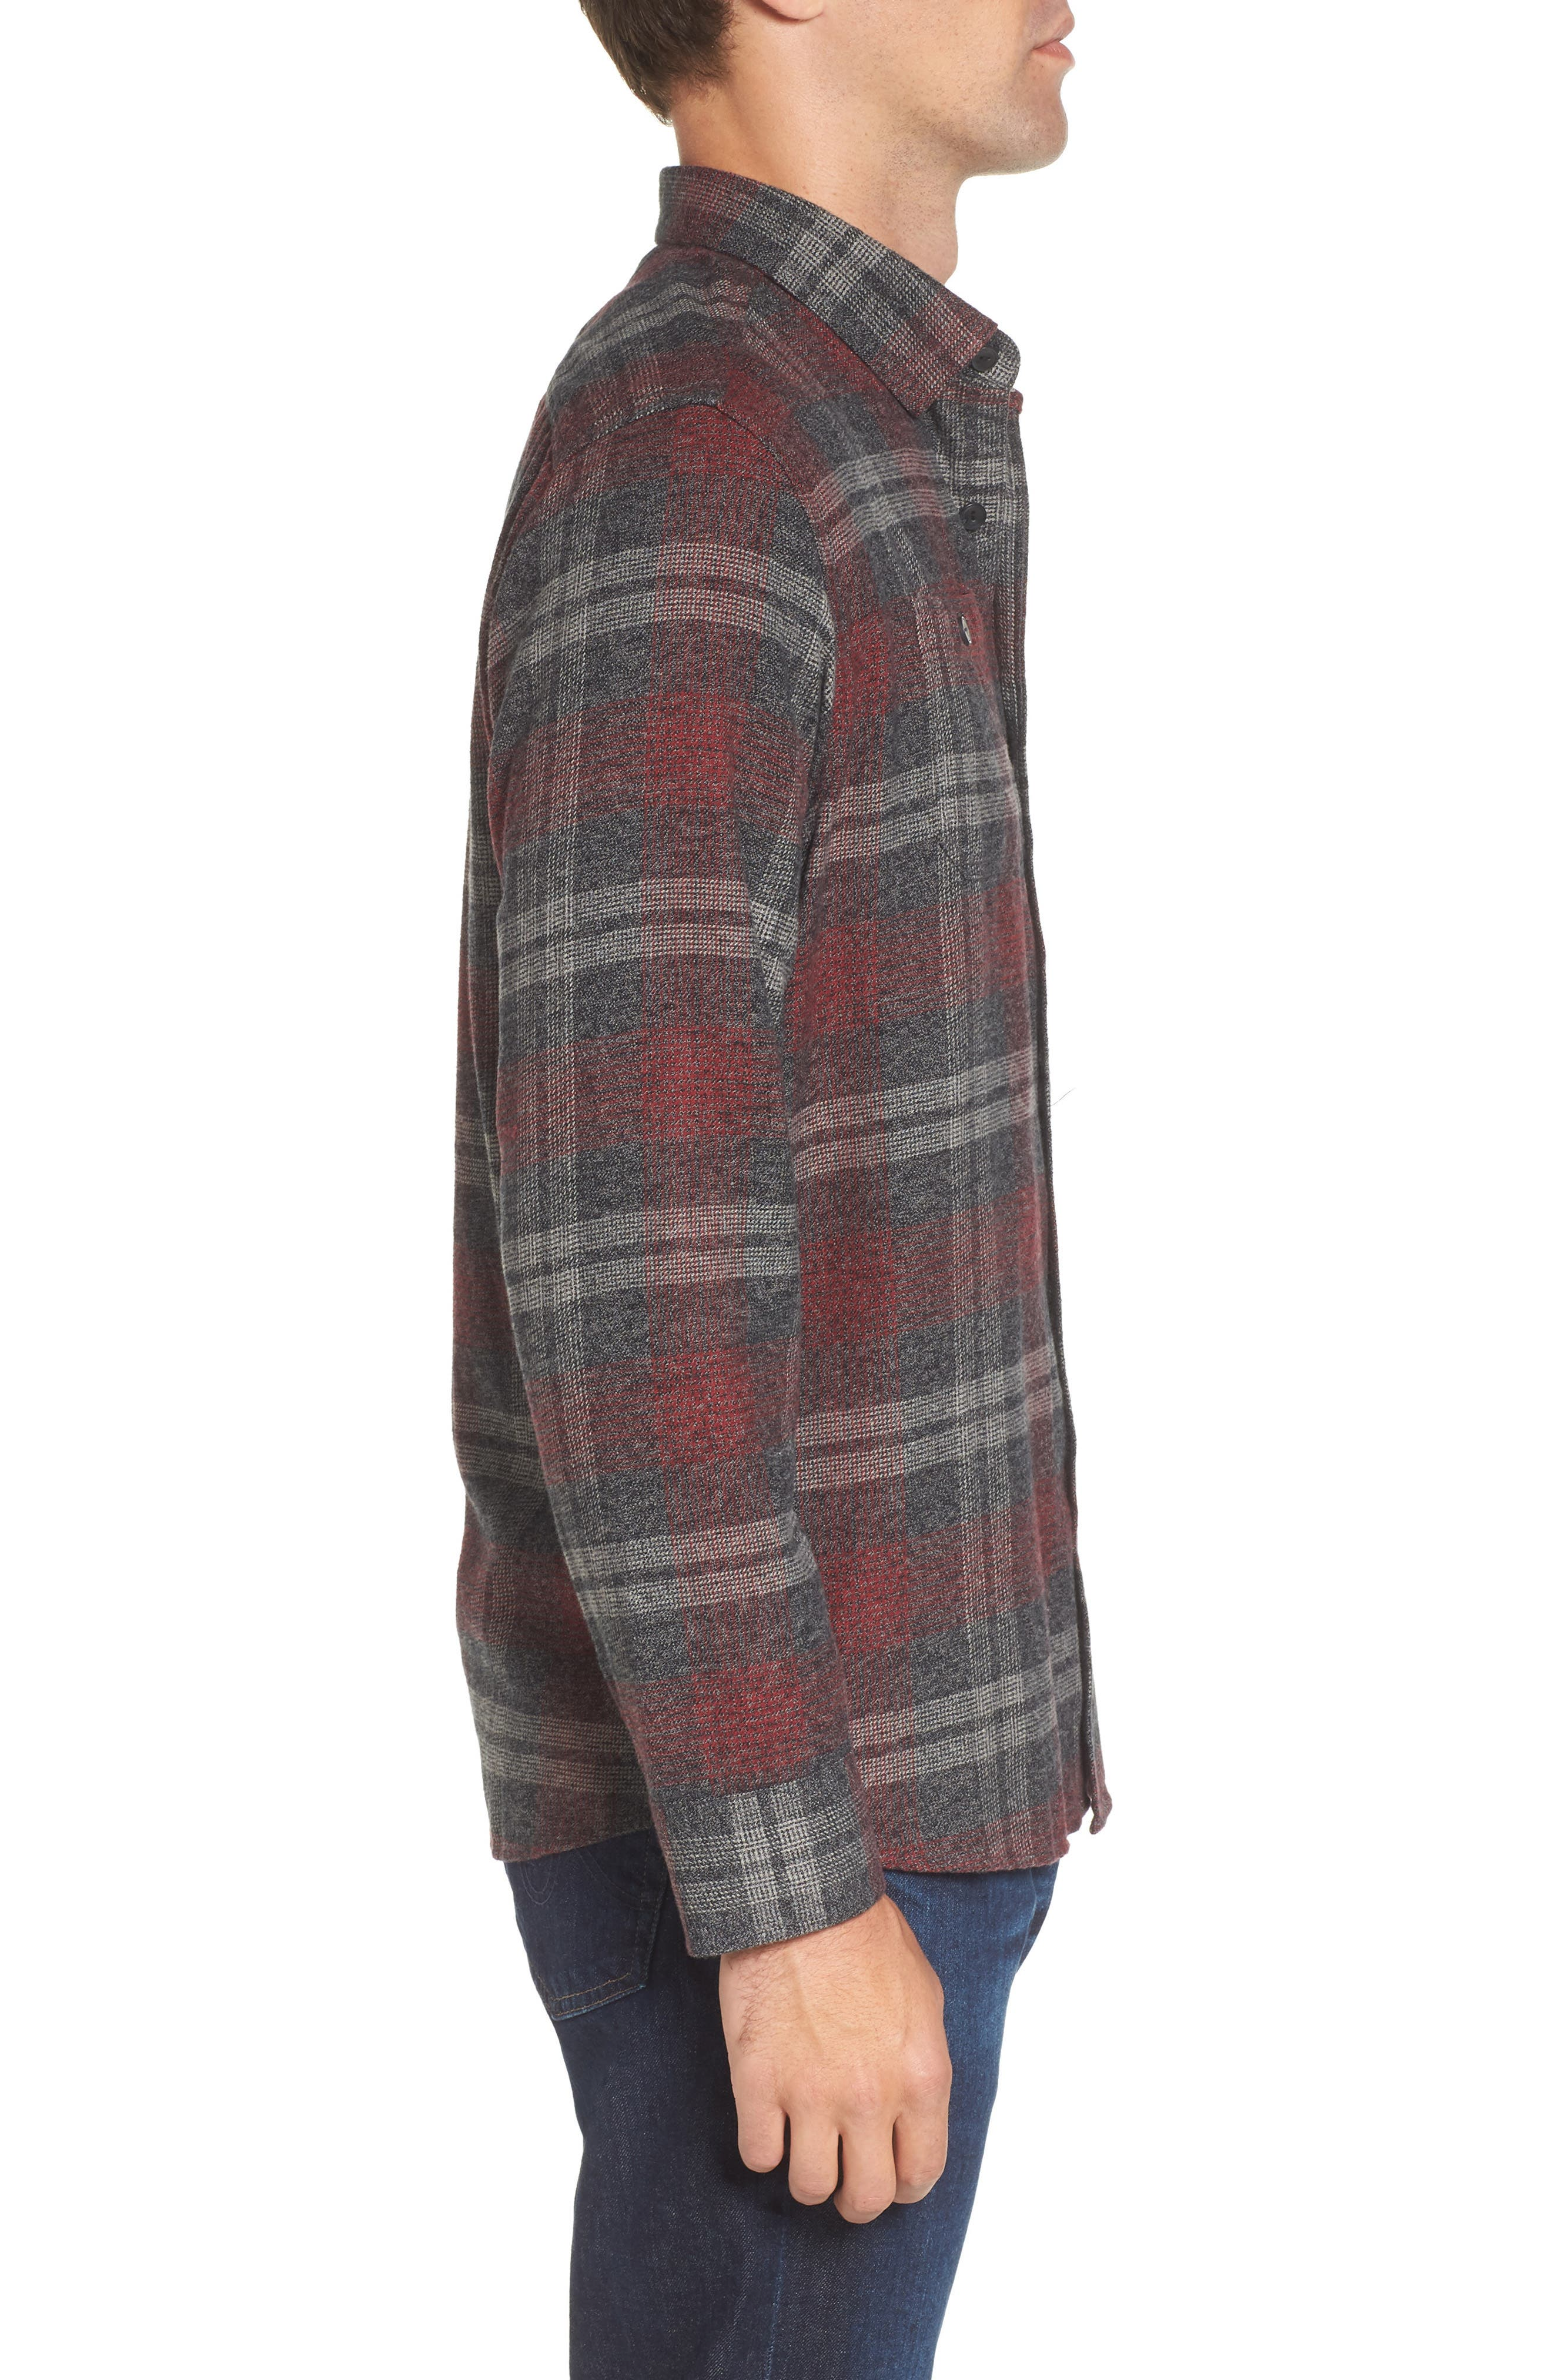 Marston Lux Plaid Flannel Shirt,                             Alternate thumbnail 3, color,                             Charcoal Burgundy